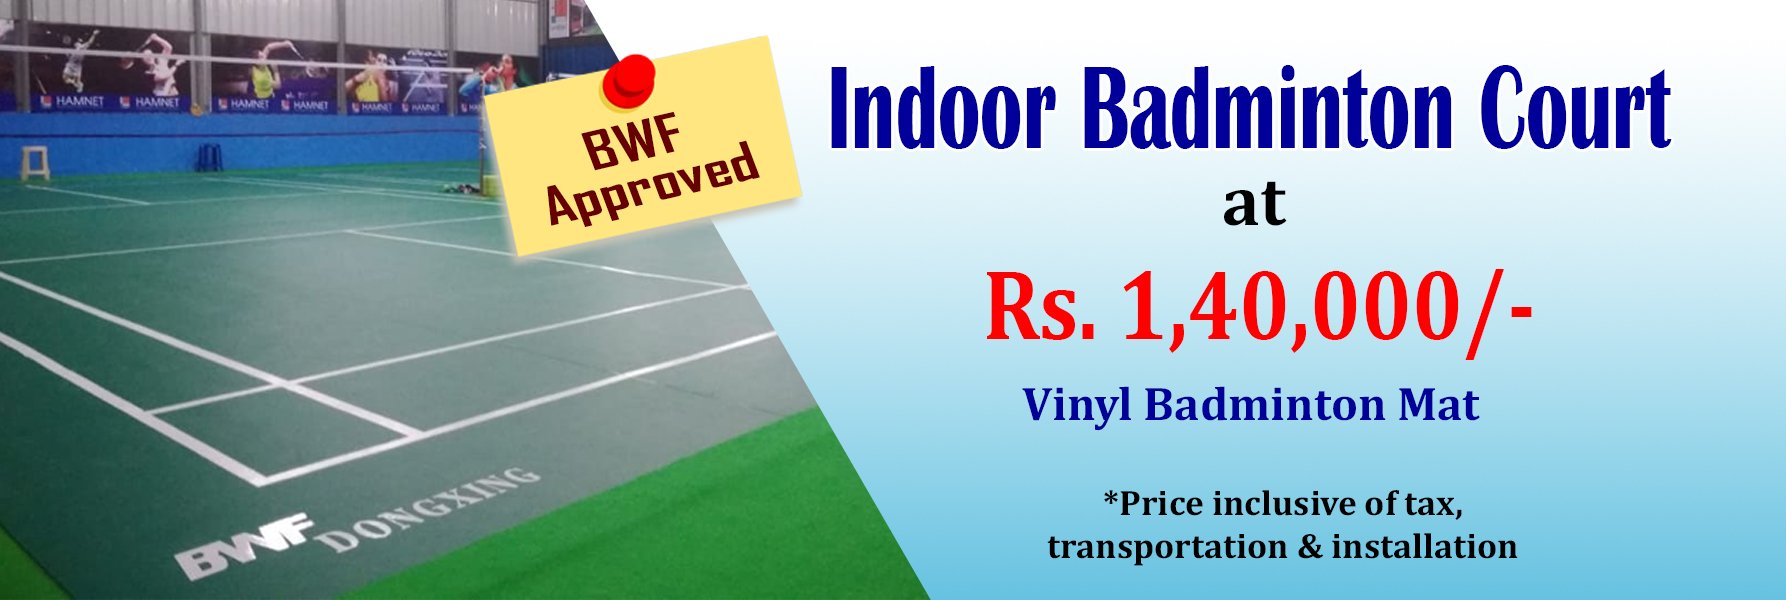 Home Gym Equipment, home gym, gym equipment in Trivandrum, treadmill in Trivandrum, fitness equipment store in Trivandrum